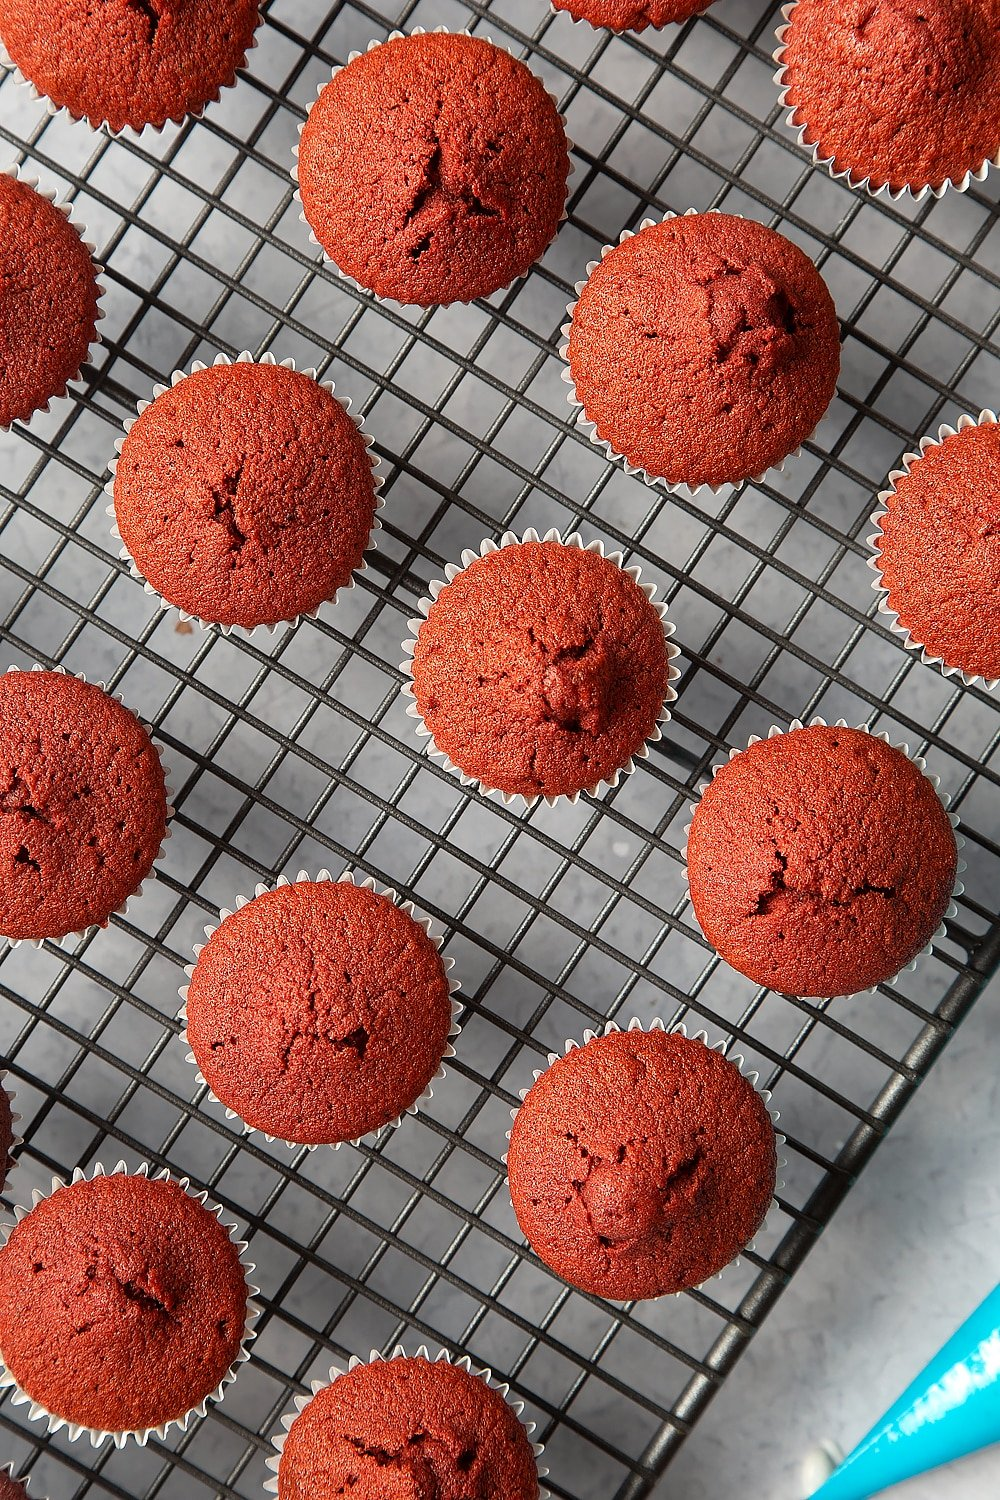 Overhead shot of the mini red velvet cupcakes cooling on a wire rack.